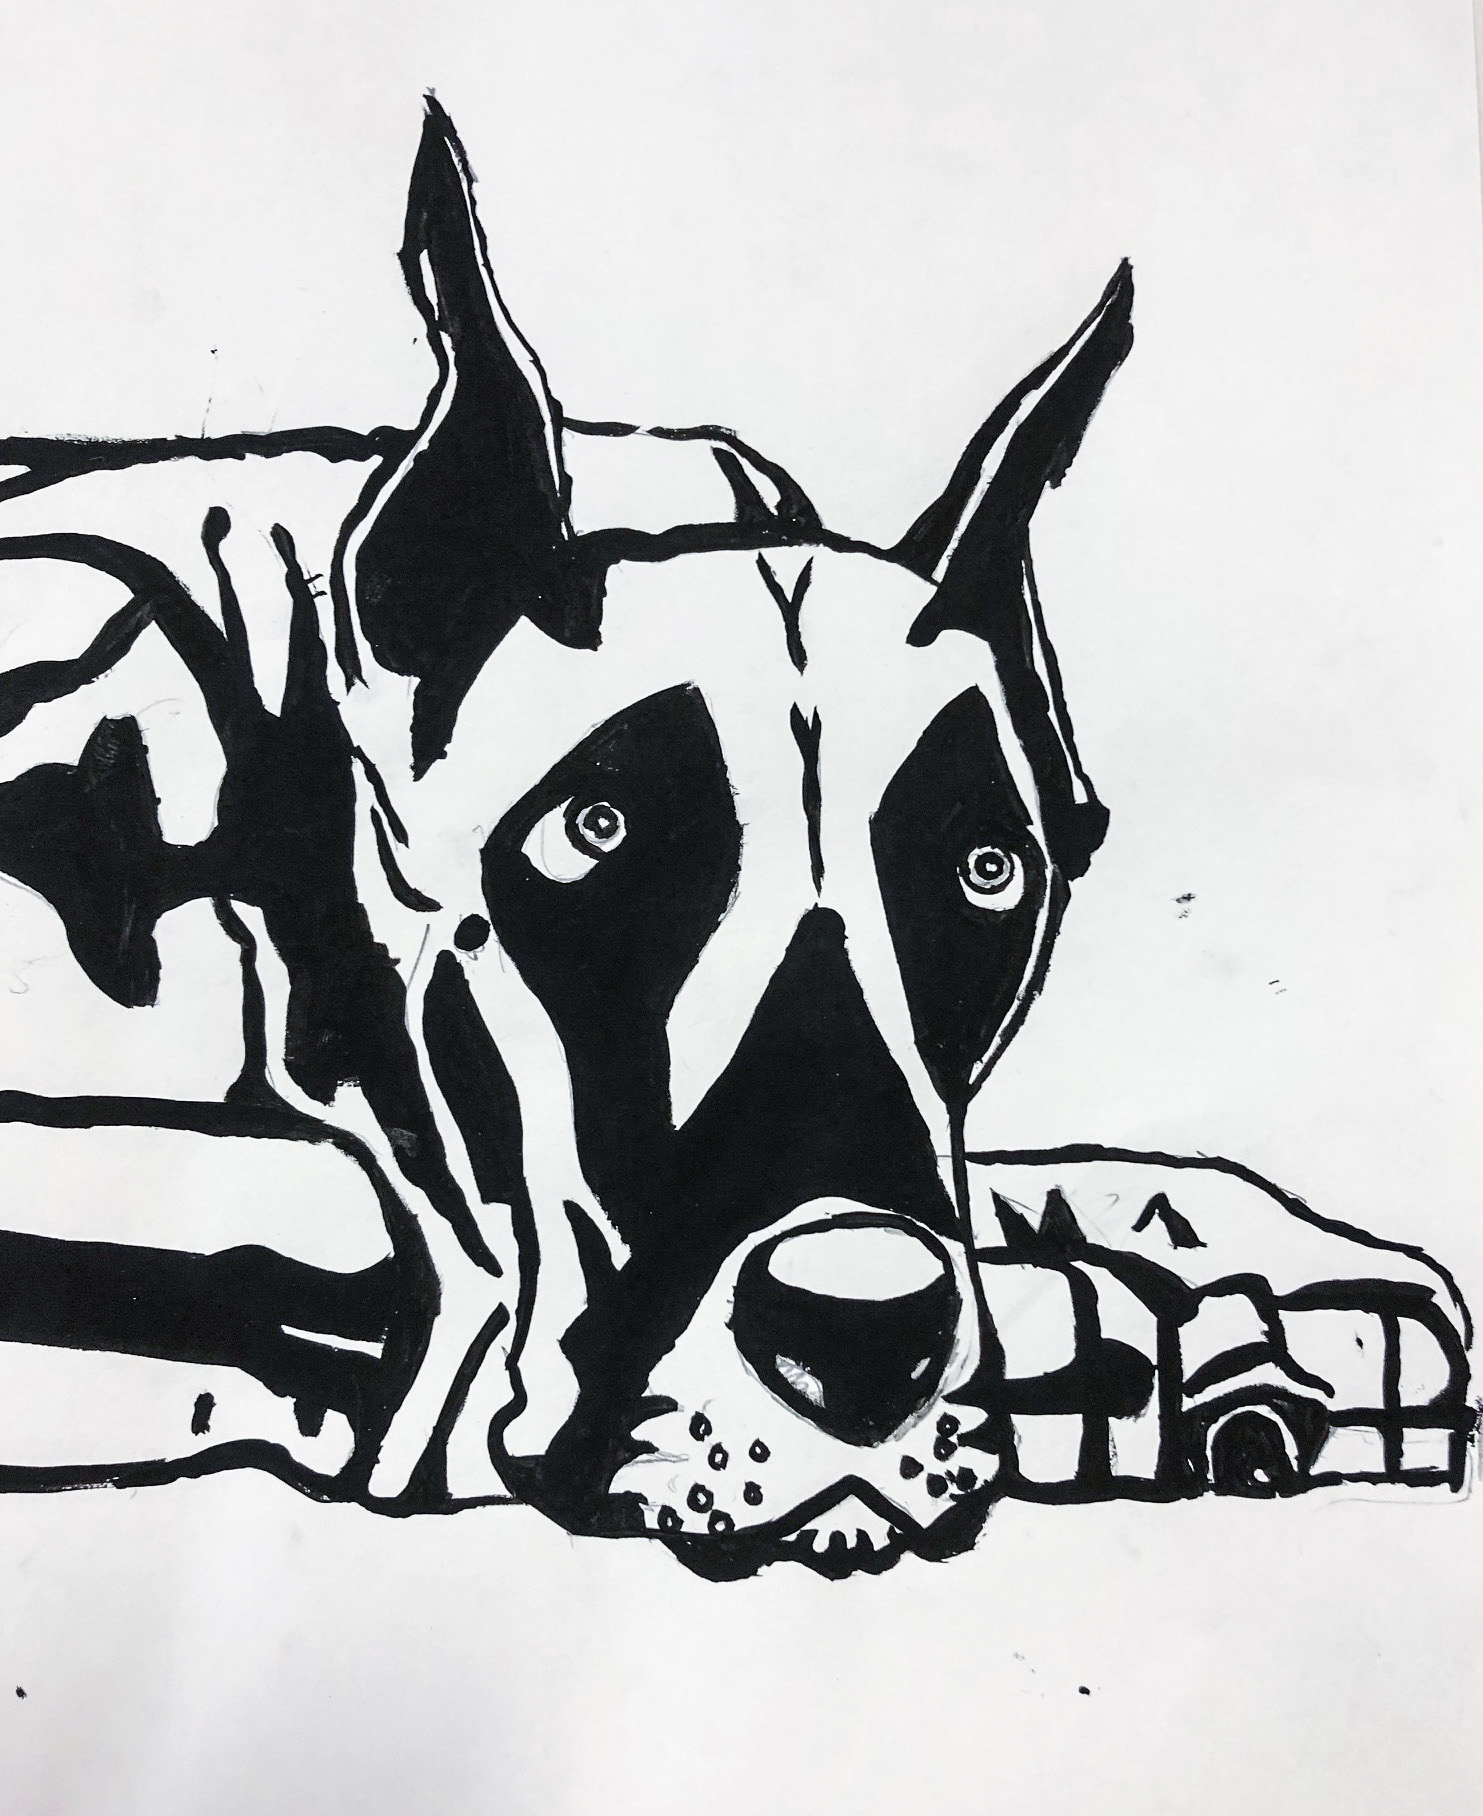 Class Artwork – Stencilling, inspired by Banksy